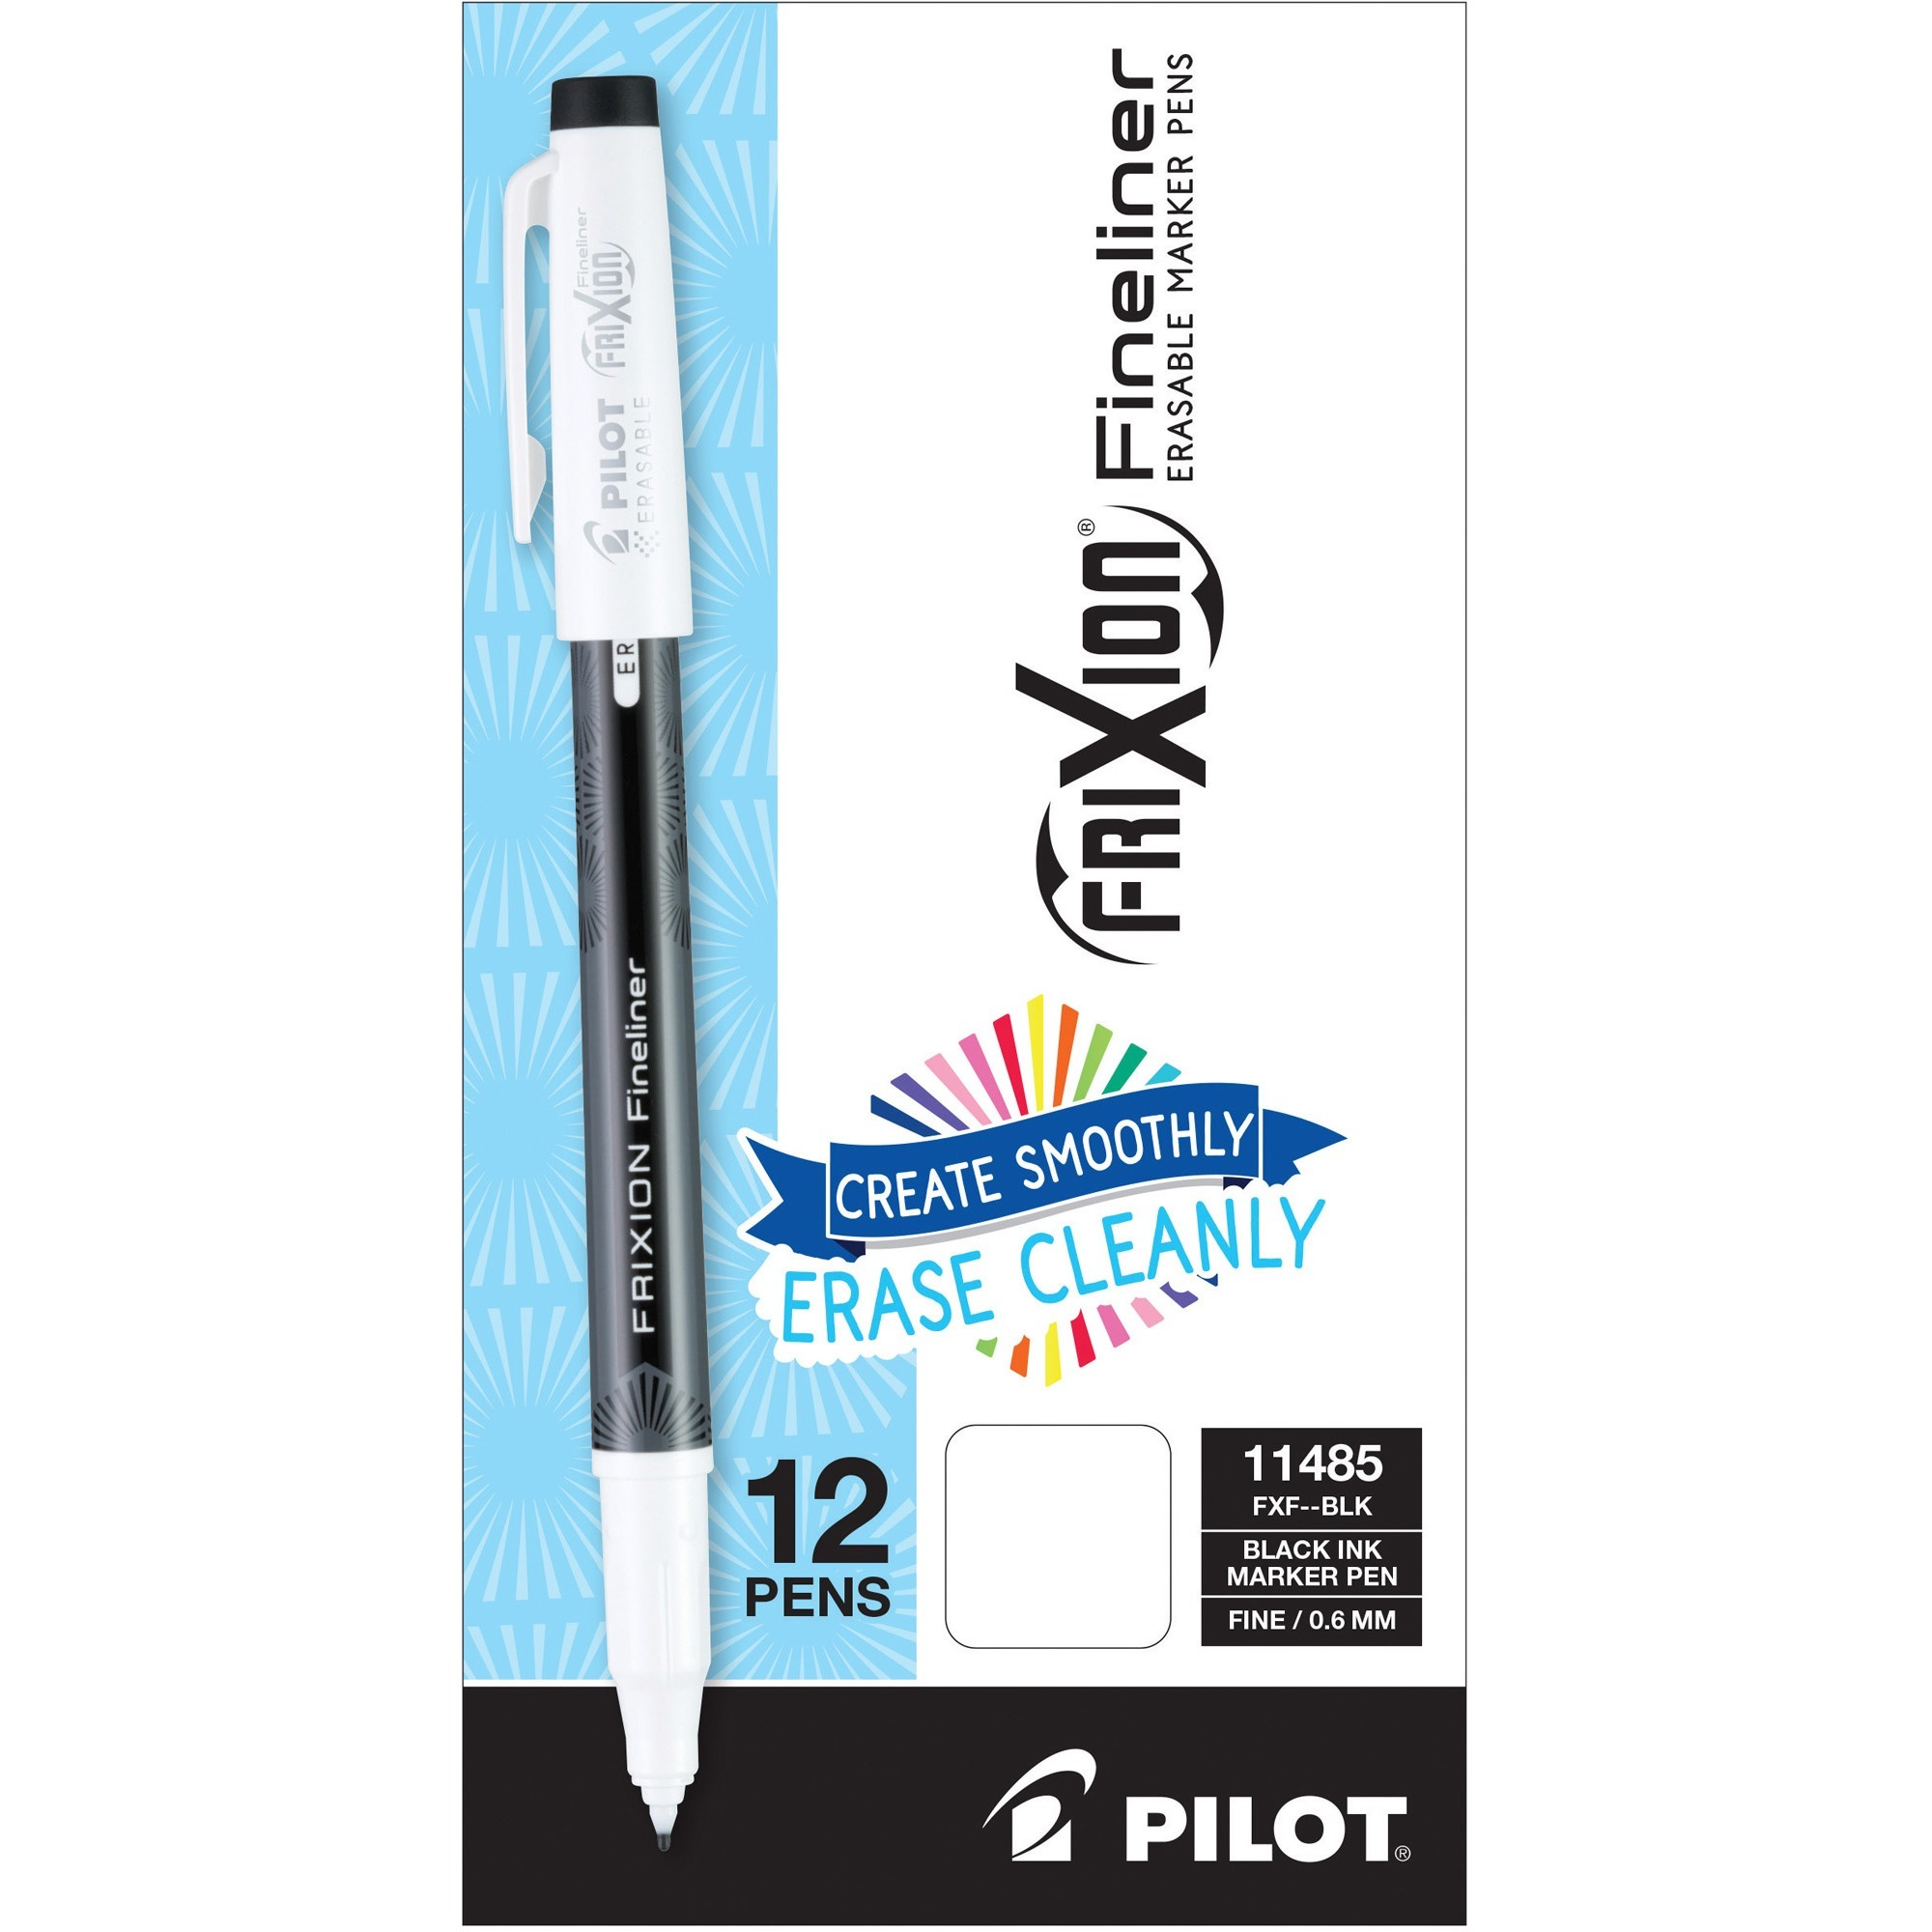 2 in 1 Stylus Ballpoint Pen Tablets Pen for Tablets Pads Erasable TouchableJ/&C